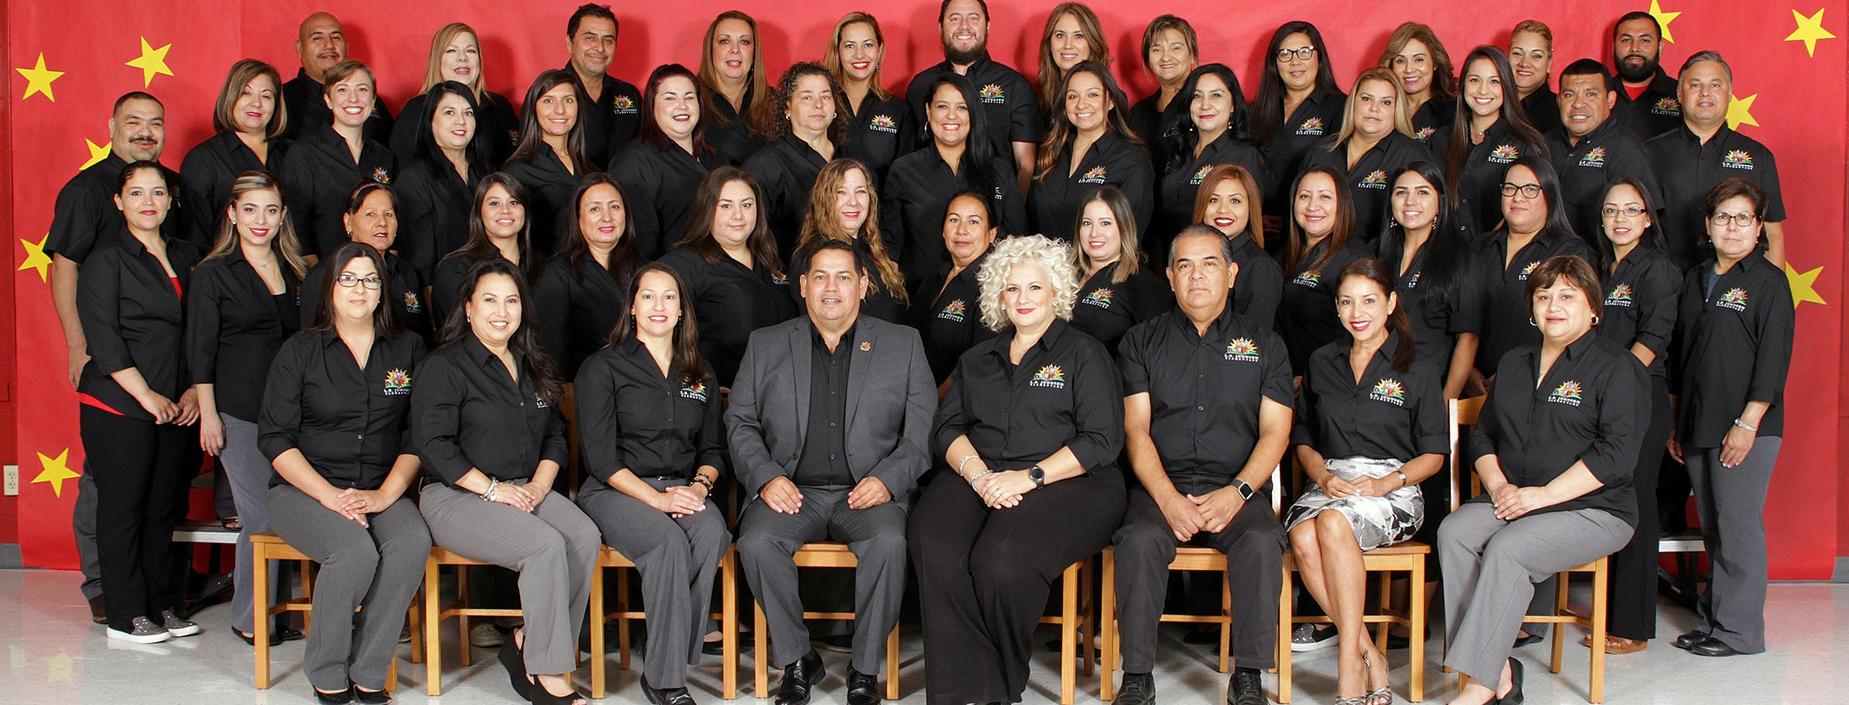 Staff Picture 2018-2019